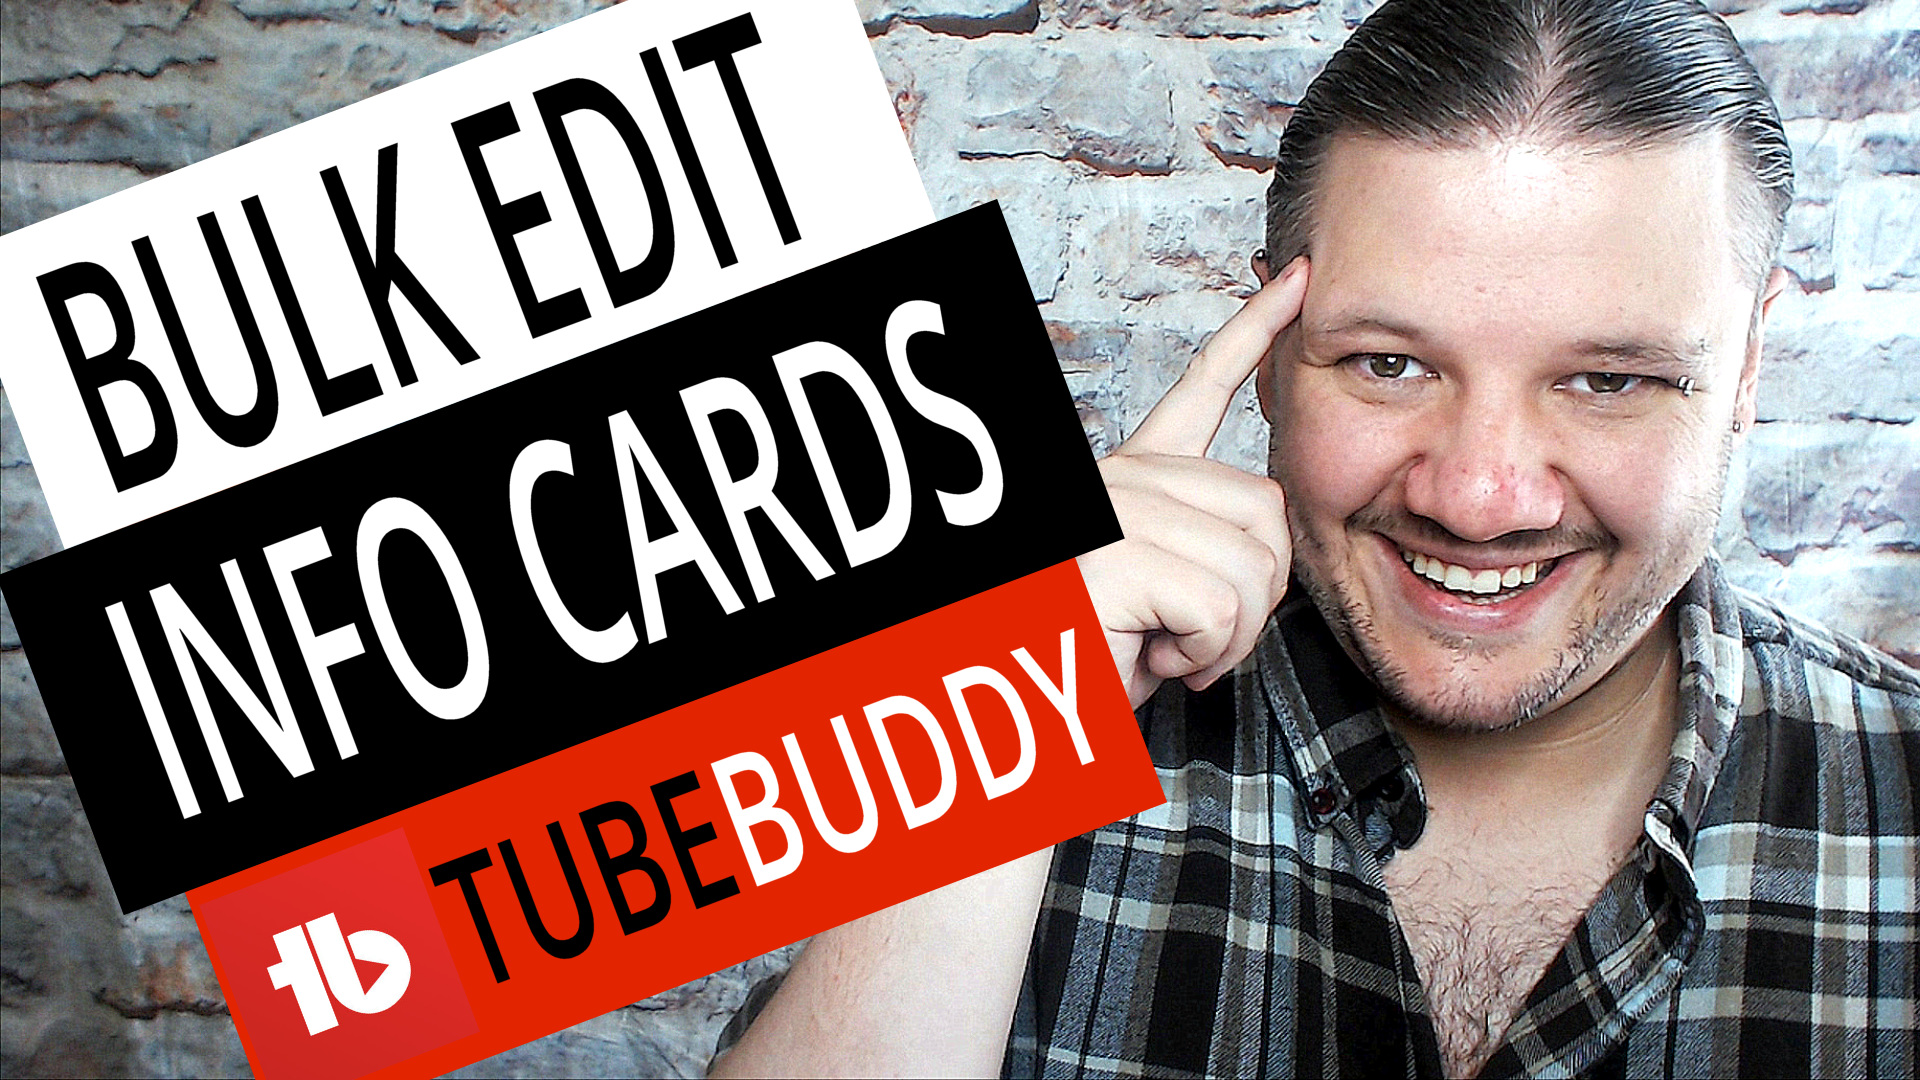 alan spicer,alanspicer,youtube tips,asyt,How To Bulk Edit Info Cards on YouTube with TubeBuddy,How To Bulk Edit Info Cards on YouTube,How To Bulk Edit Info Cards,bulk edit info cards,bulk edit info cards with tubebuddy,bulk change info cards,info cards bulk edit,interactive cards,bulk edit youtube videos,bulk update info cards,info cards,how to bulk change info cards on youtube,bulk add info cards,bulk remove info cards,tubebuddy,tubebuddy bulk edit